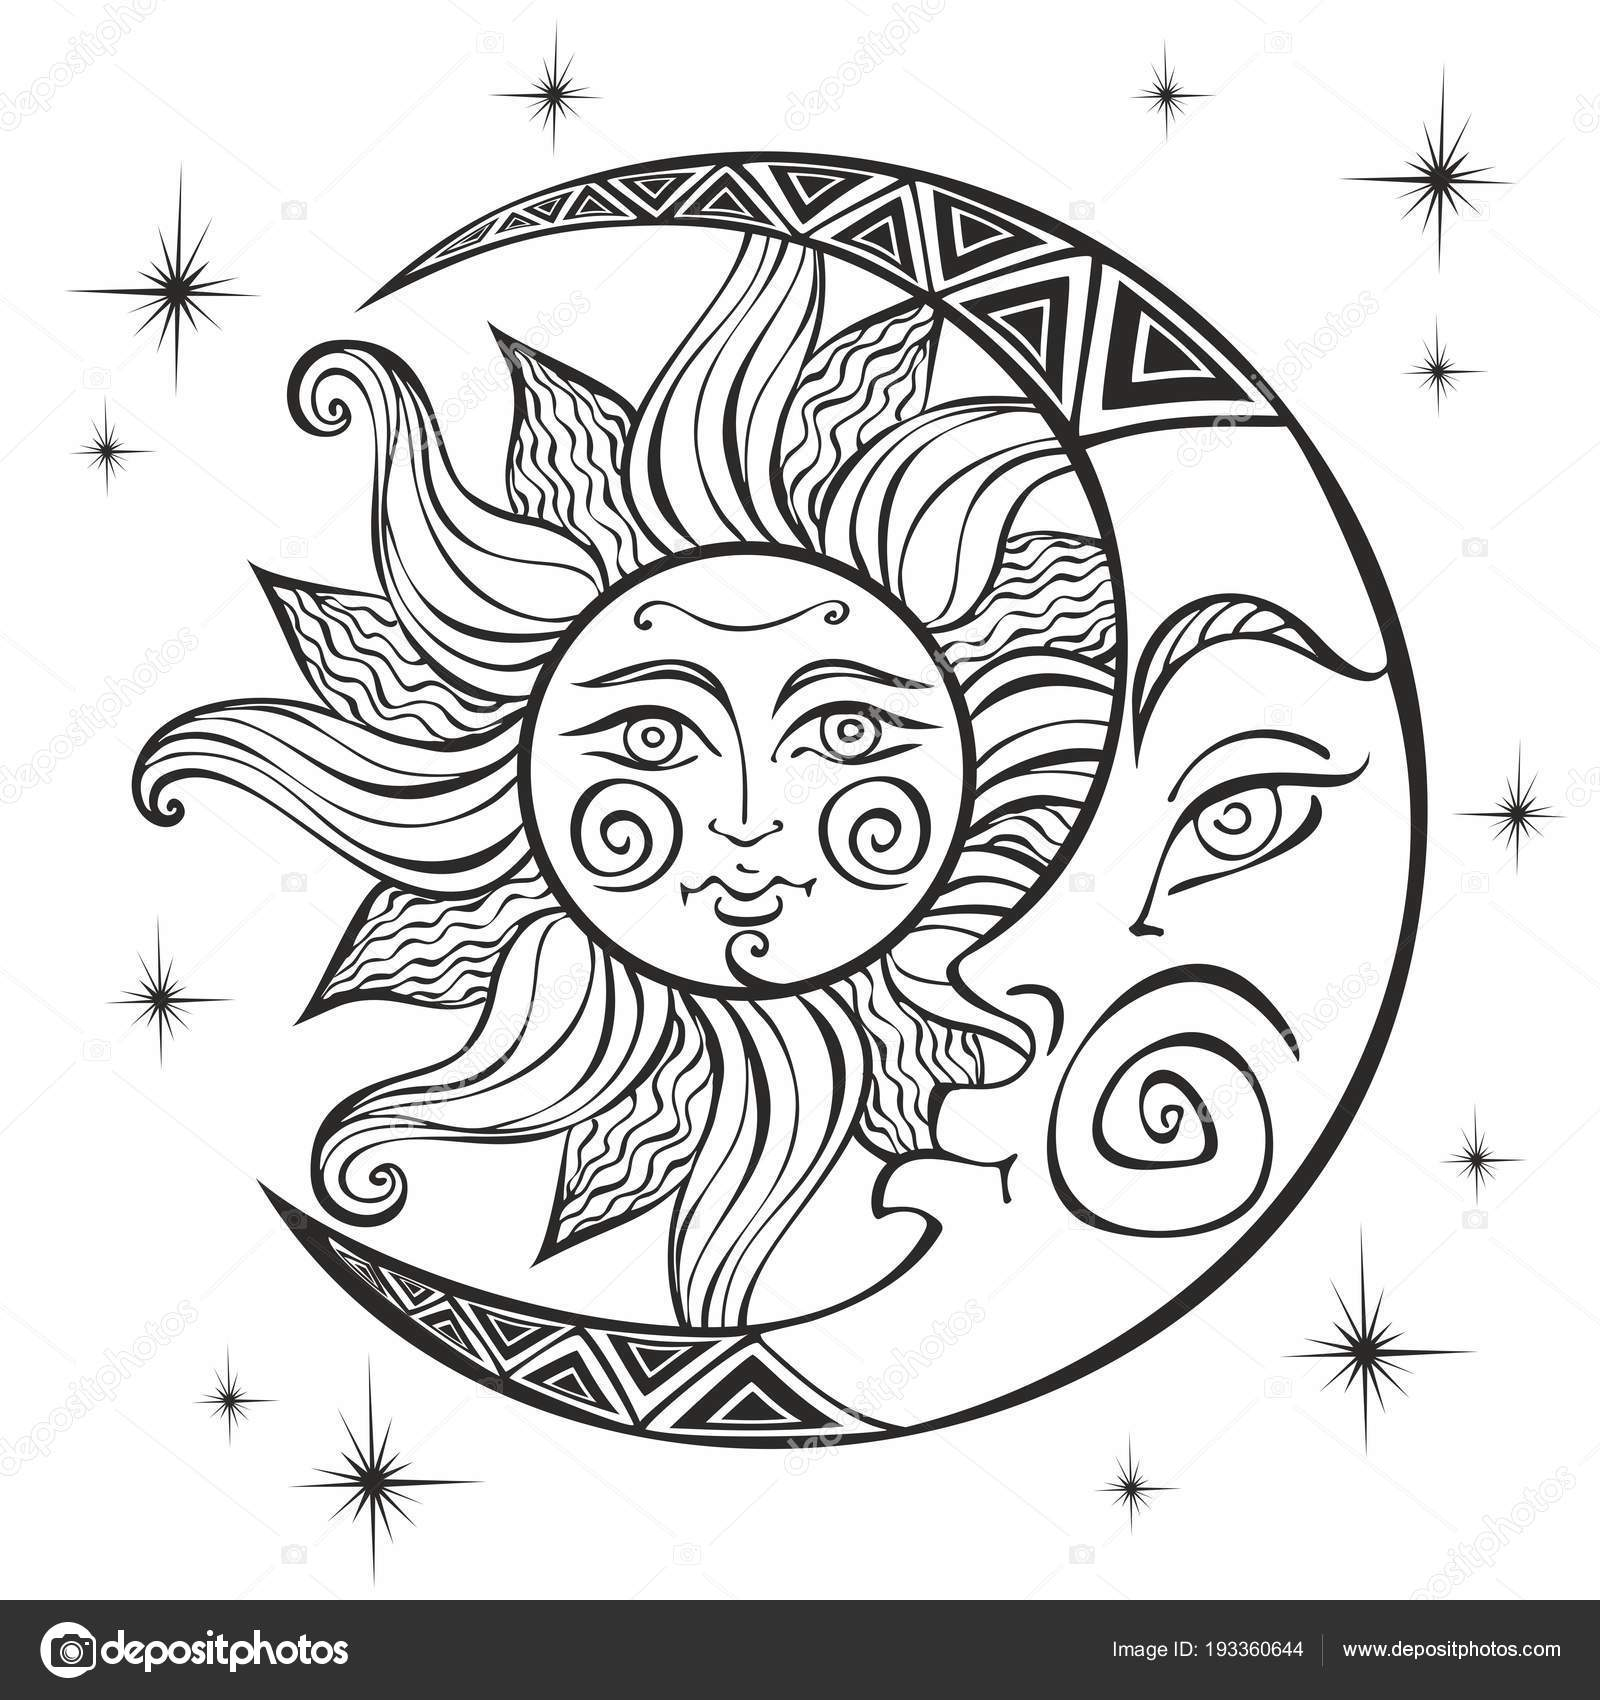 Moon Sun Ancient Astrological Symbol Engraving Boho Style Ethnic